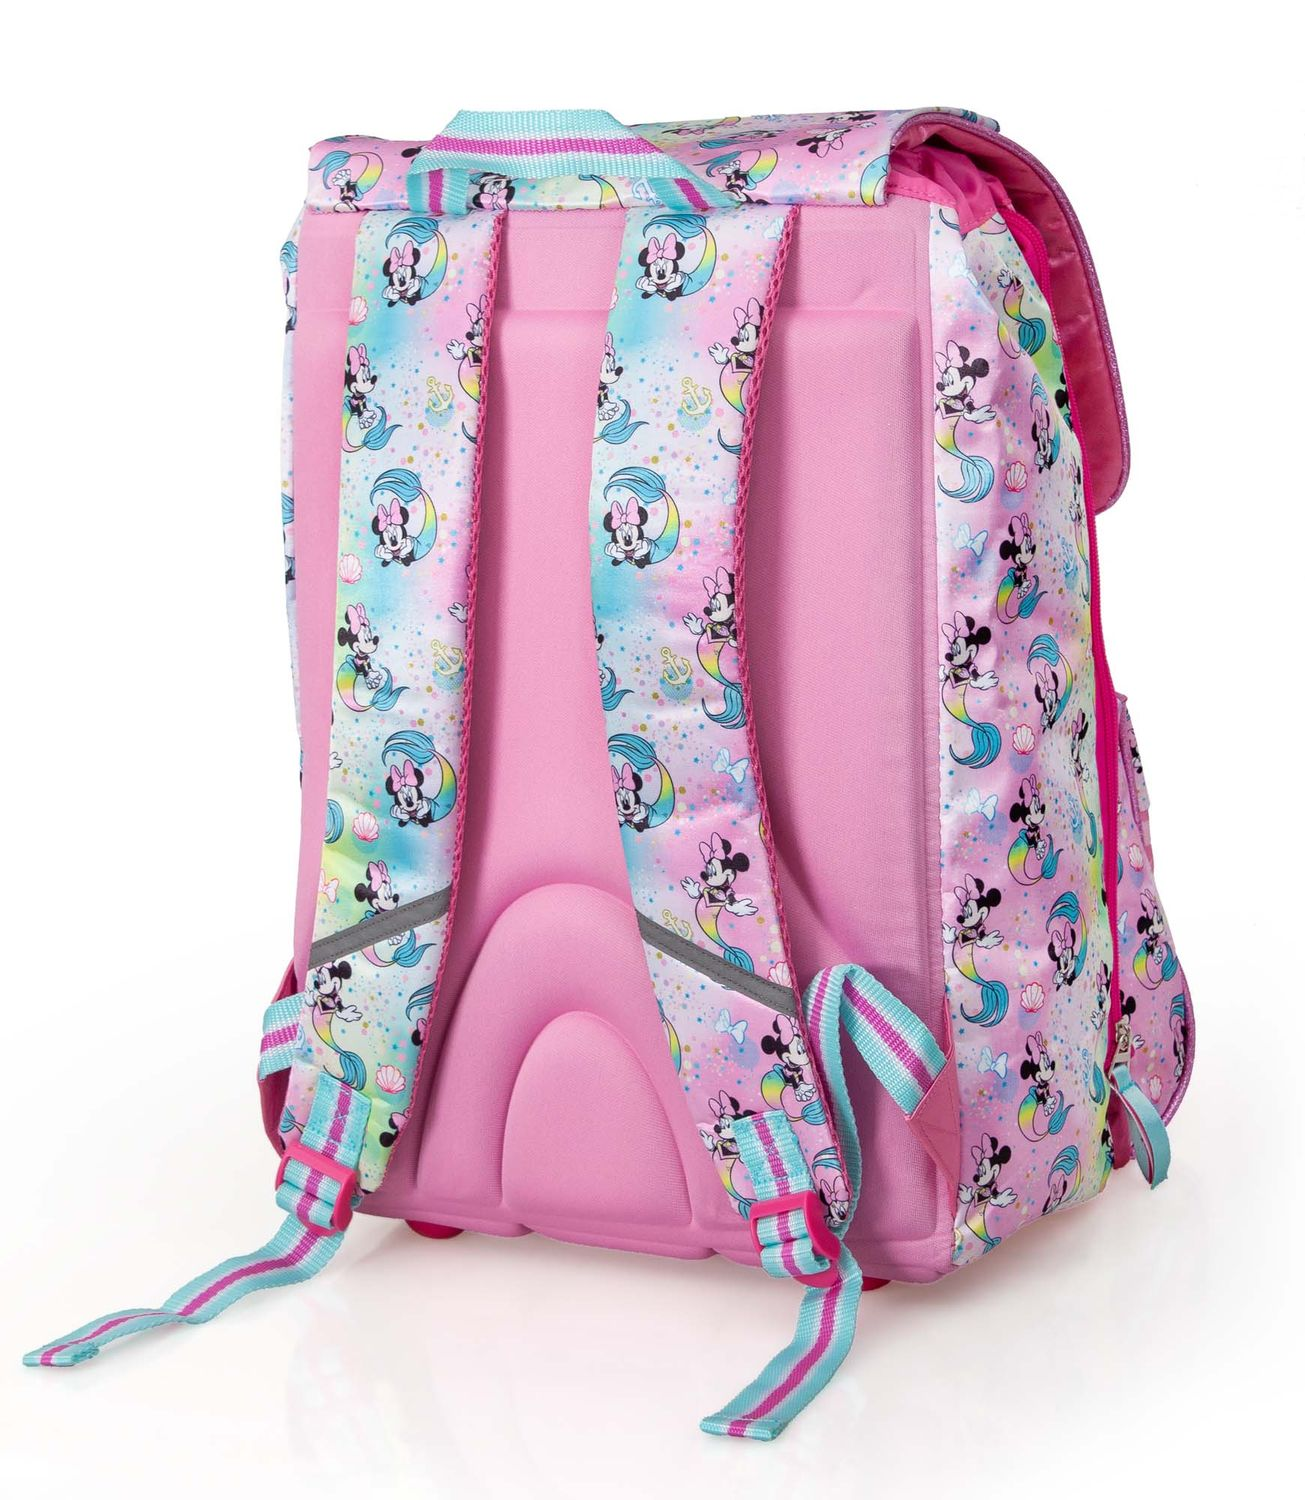 Extensible Backpack MINNIE MOUSE MERMAID – image 2